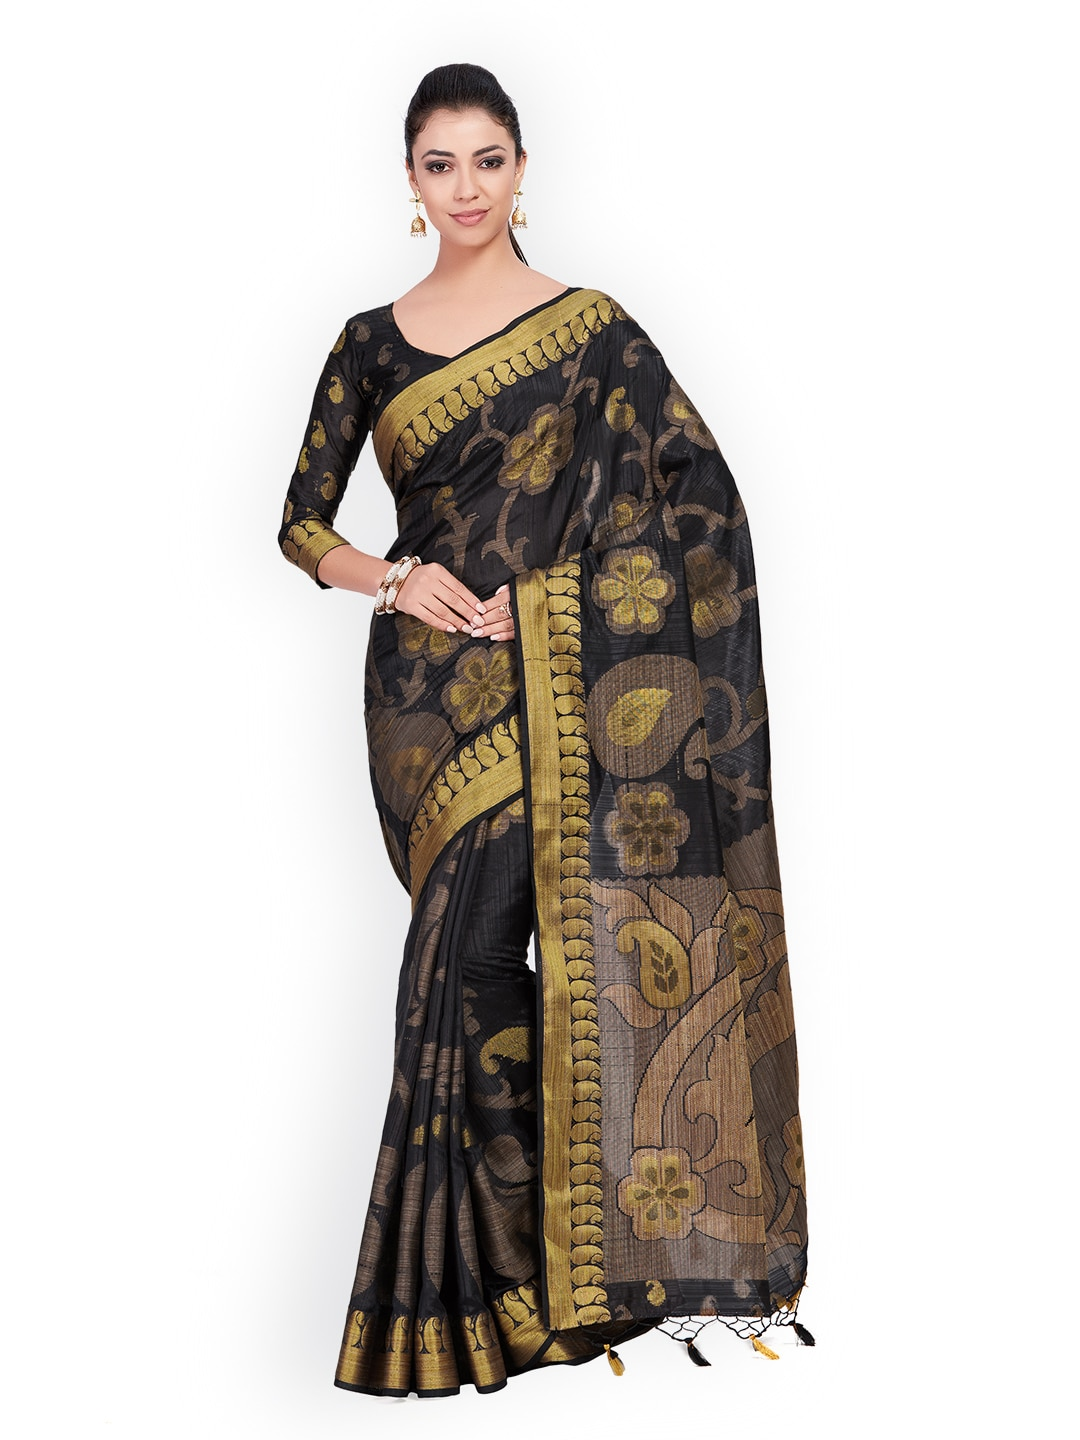 fbcf21255ae2b2 Saree - Buy Sarees Online at Best Price in India   Myntra